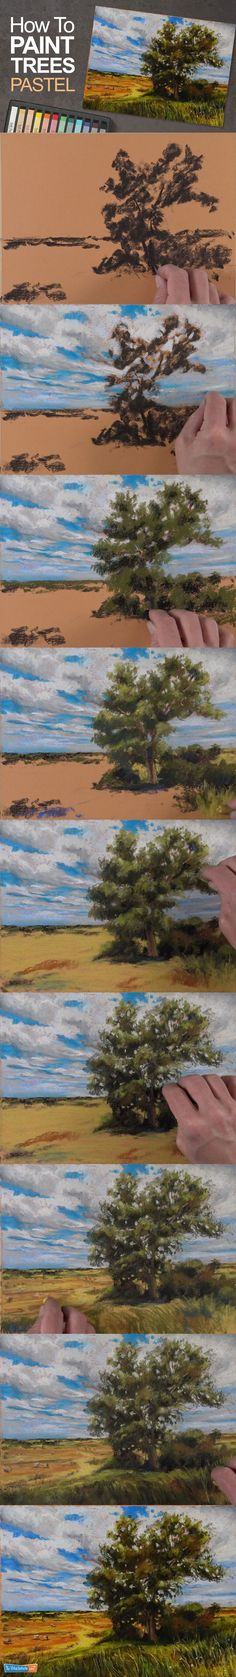 Learn how to paint a tree with pastels in this step by step painting lesson. #pastels #trees #howtopaint #howtodraw #artlesson #pastel